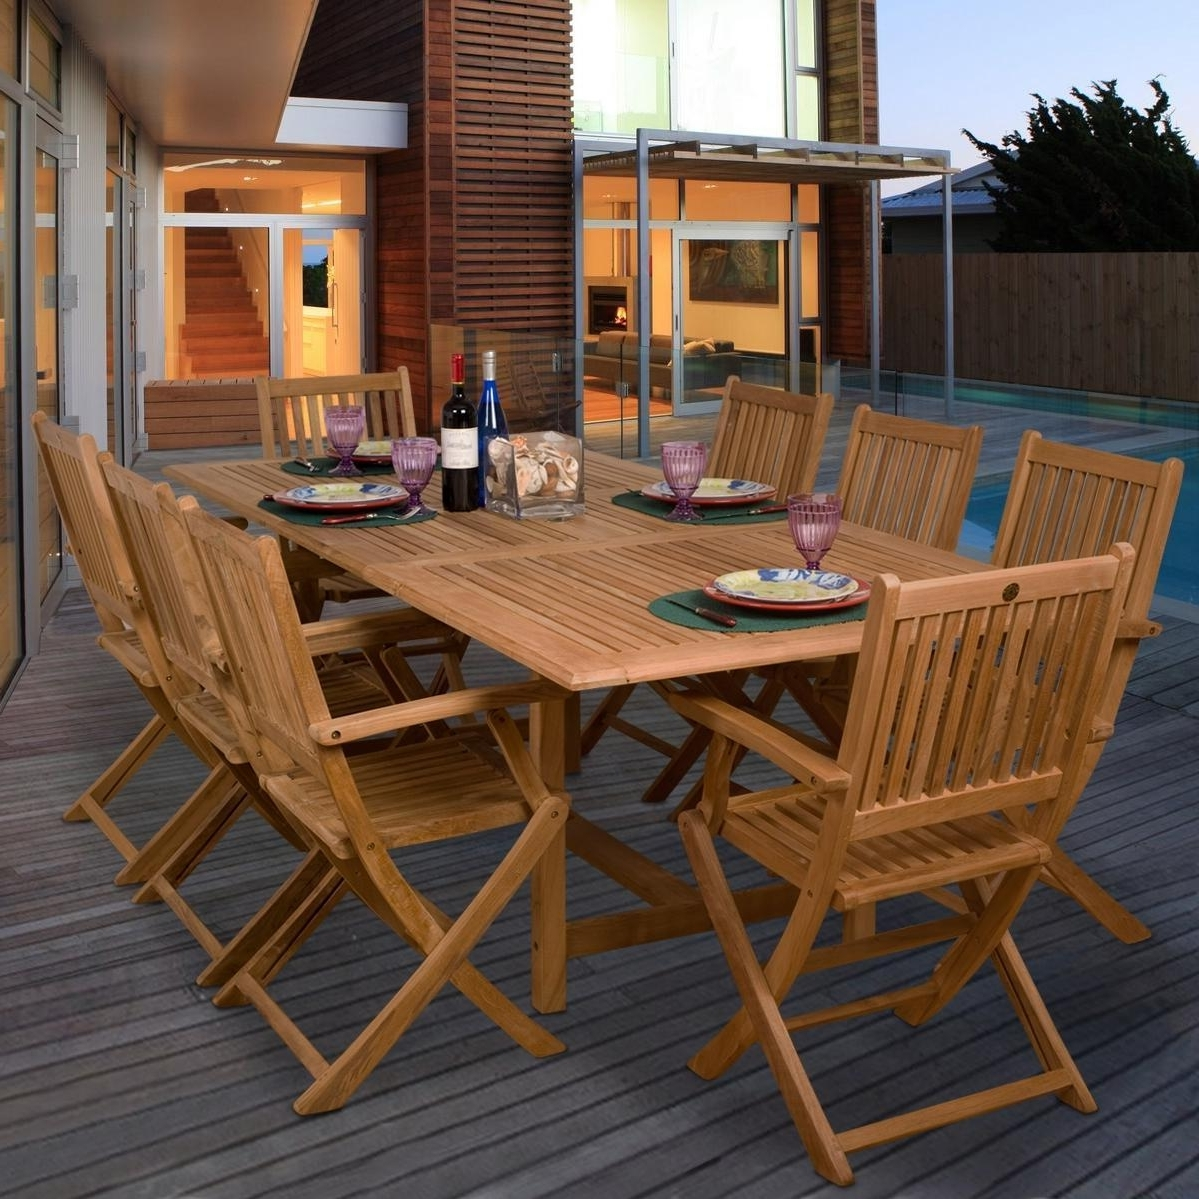 Teak Hamburg 9 Piece Teak Patio Dining Set With 67 X 39 Inch Pertaining To Famous Craftsman 9 Piece Extension Dining Sets (View 22 of 25)